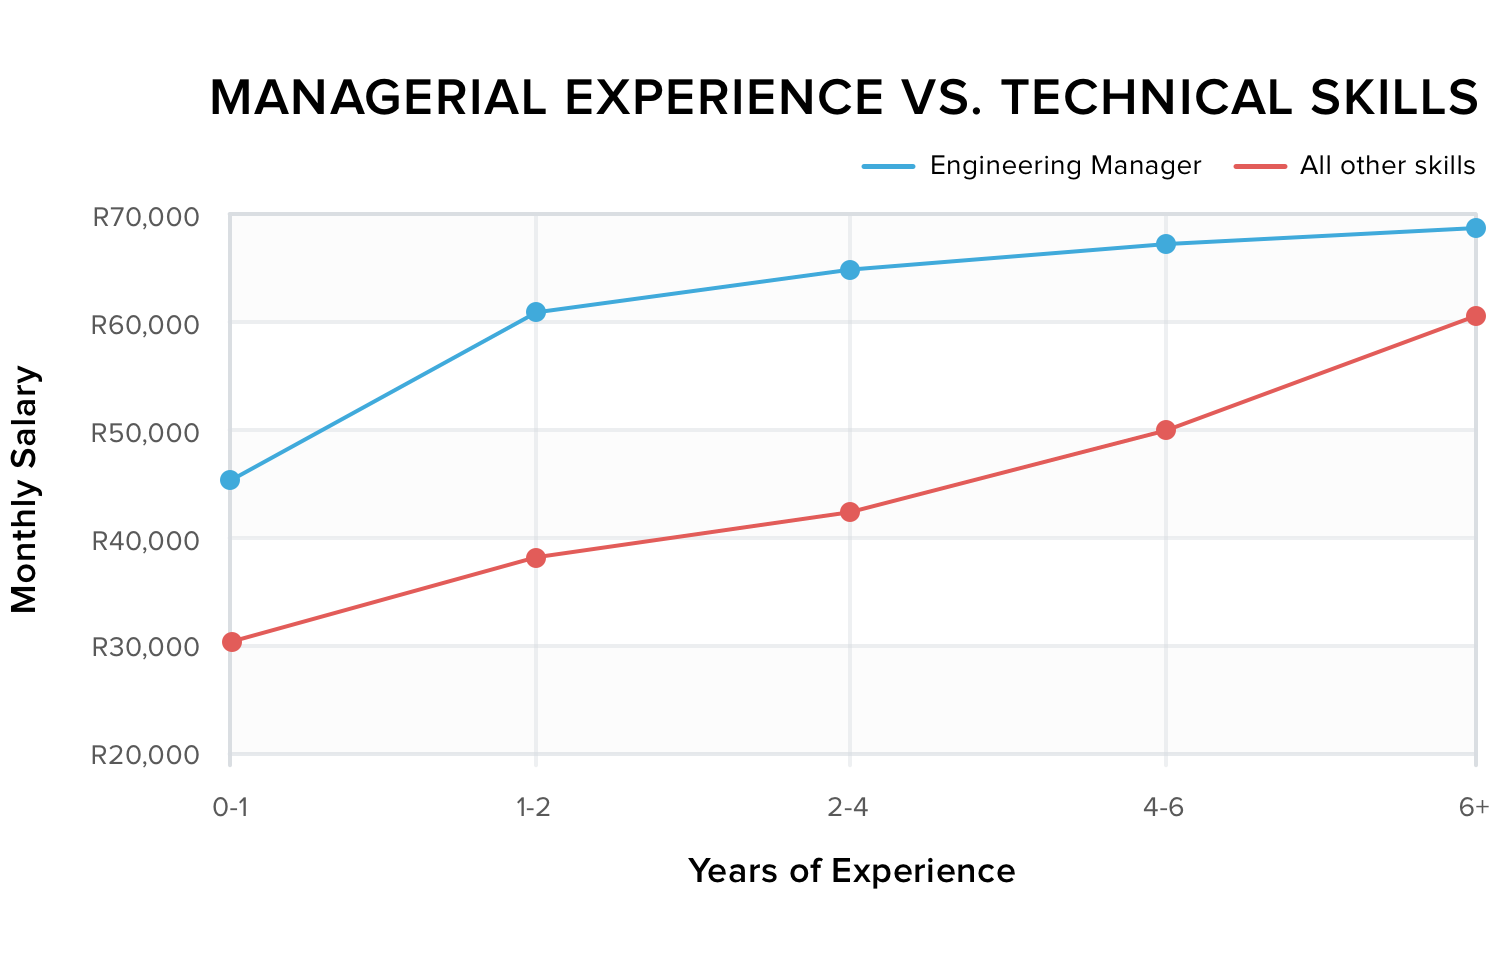 Managerial Experience vs. Technical Skills